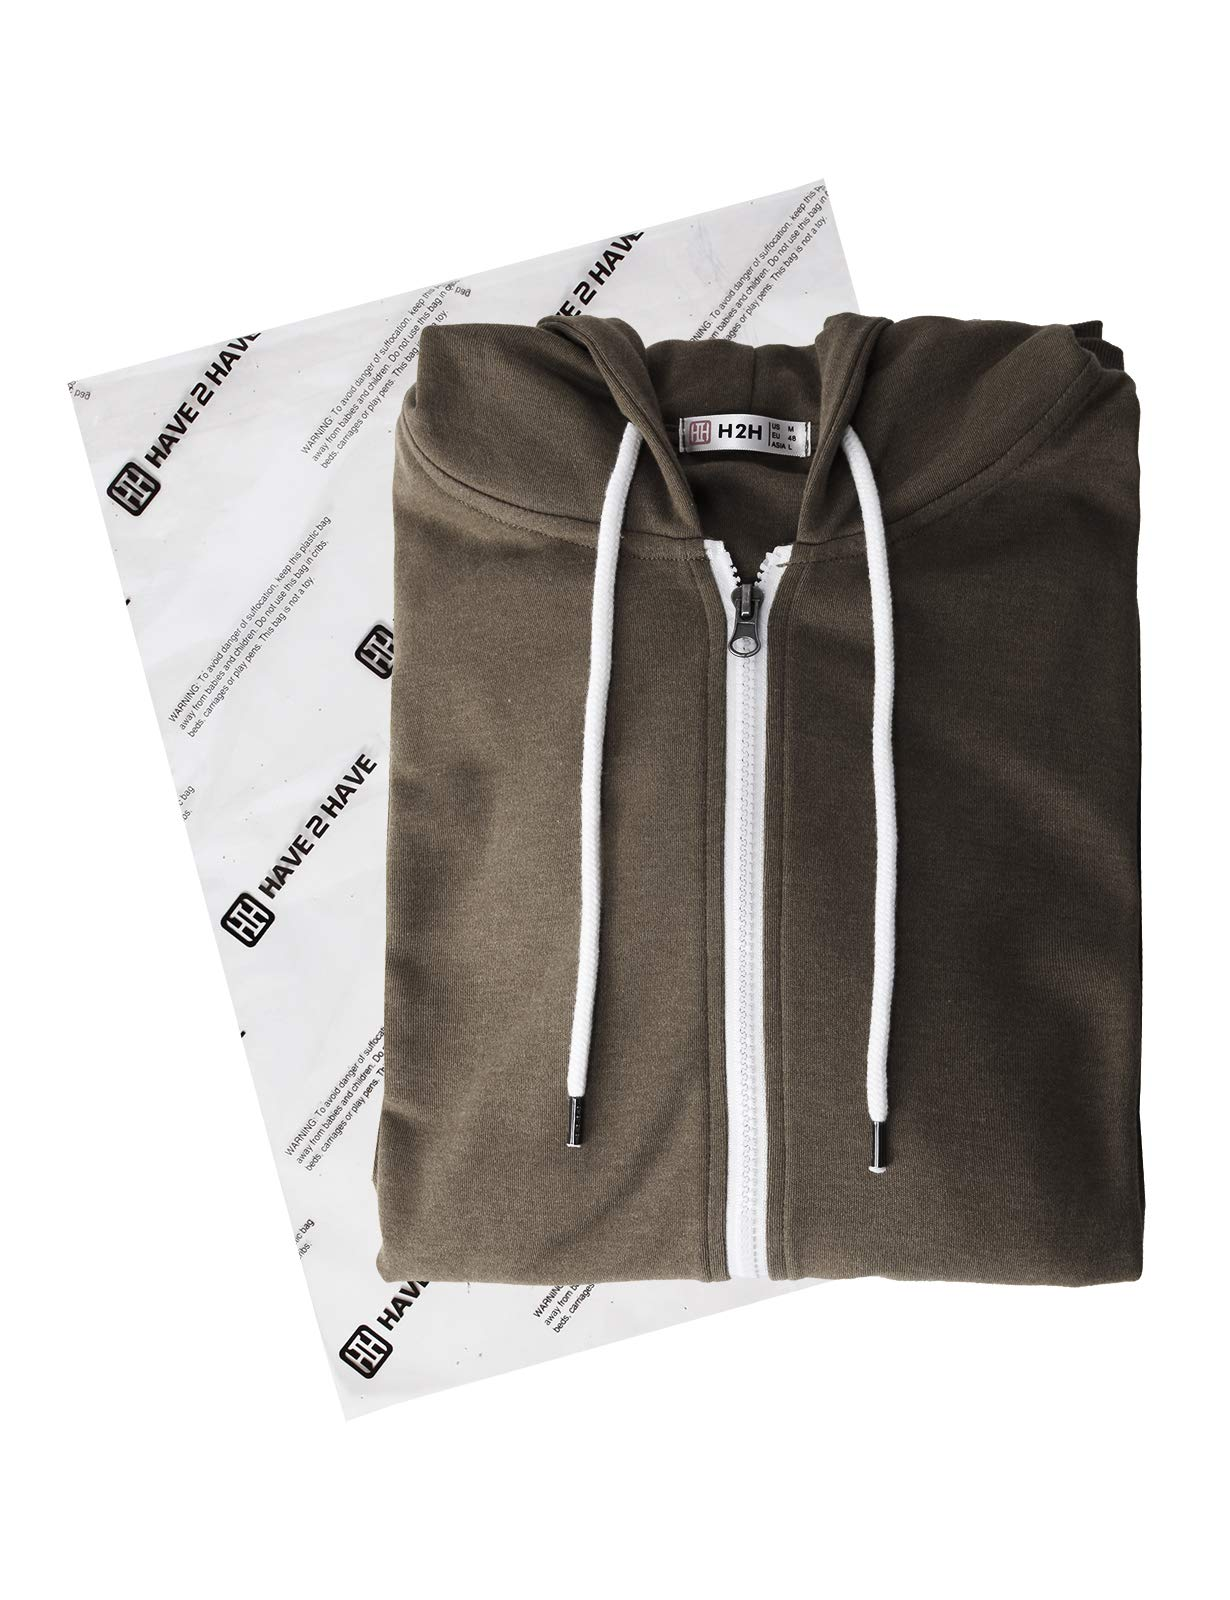 H2H Mens Casual Zip up Hoodie Basic Long Sleeve Zip up HEATHERBROWN US 2XL/Asia 3XL (CMOHOL048) by H2H (Image #6)